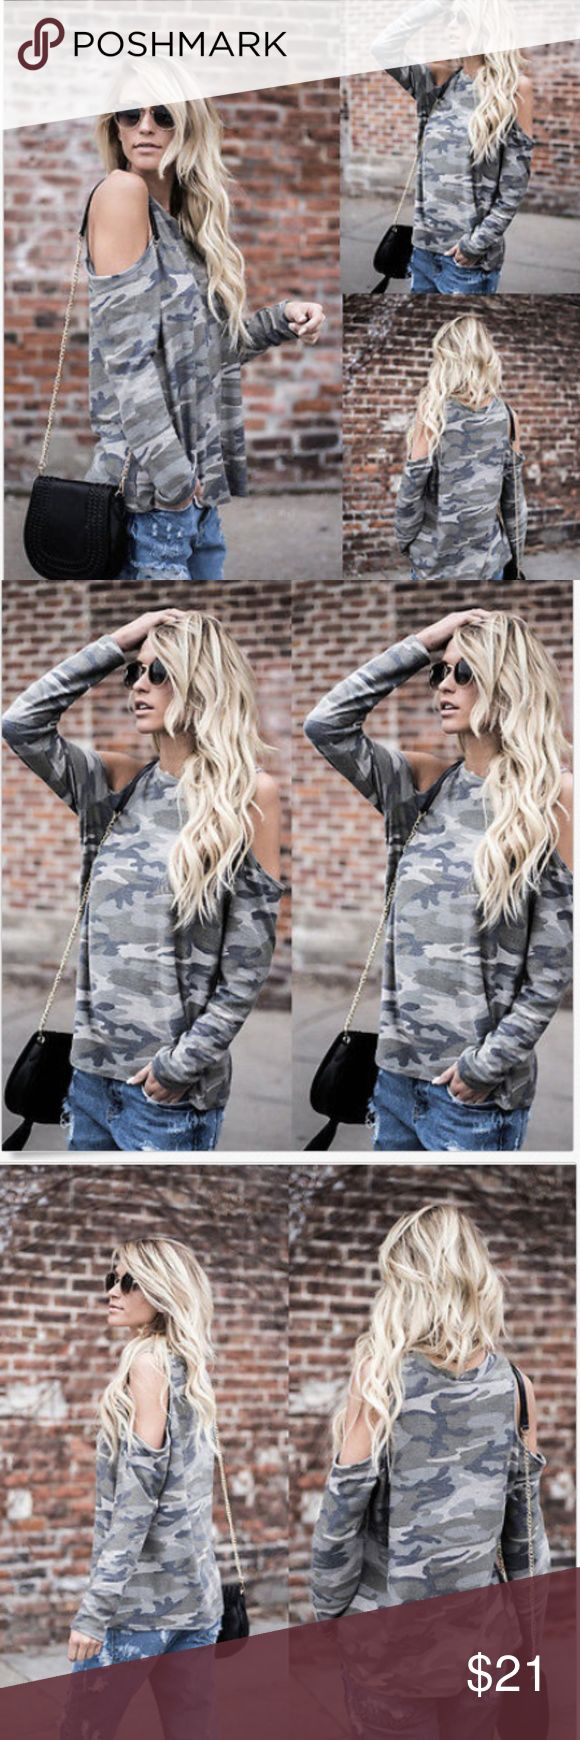 Got camo? Cold Shoulder Long Sleeve Tee New Arrival, part of the fall collection! Camo long sleeve, cotton blend, super soft, cold shoulder, relaxed fit, just in time for the log sleeve weather... 20%off bundles of 2+  stay tuned @lachulaboutique Boutique Tops Tees - Long Sleeve